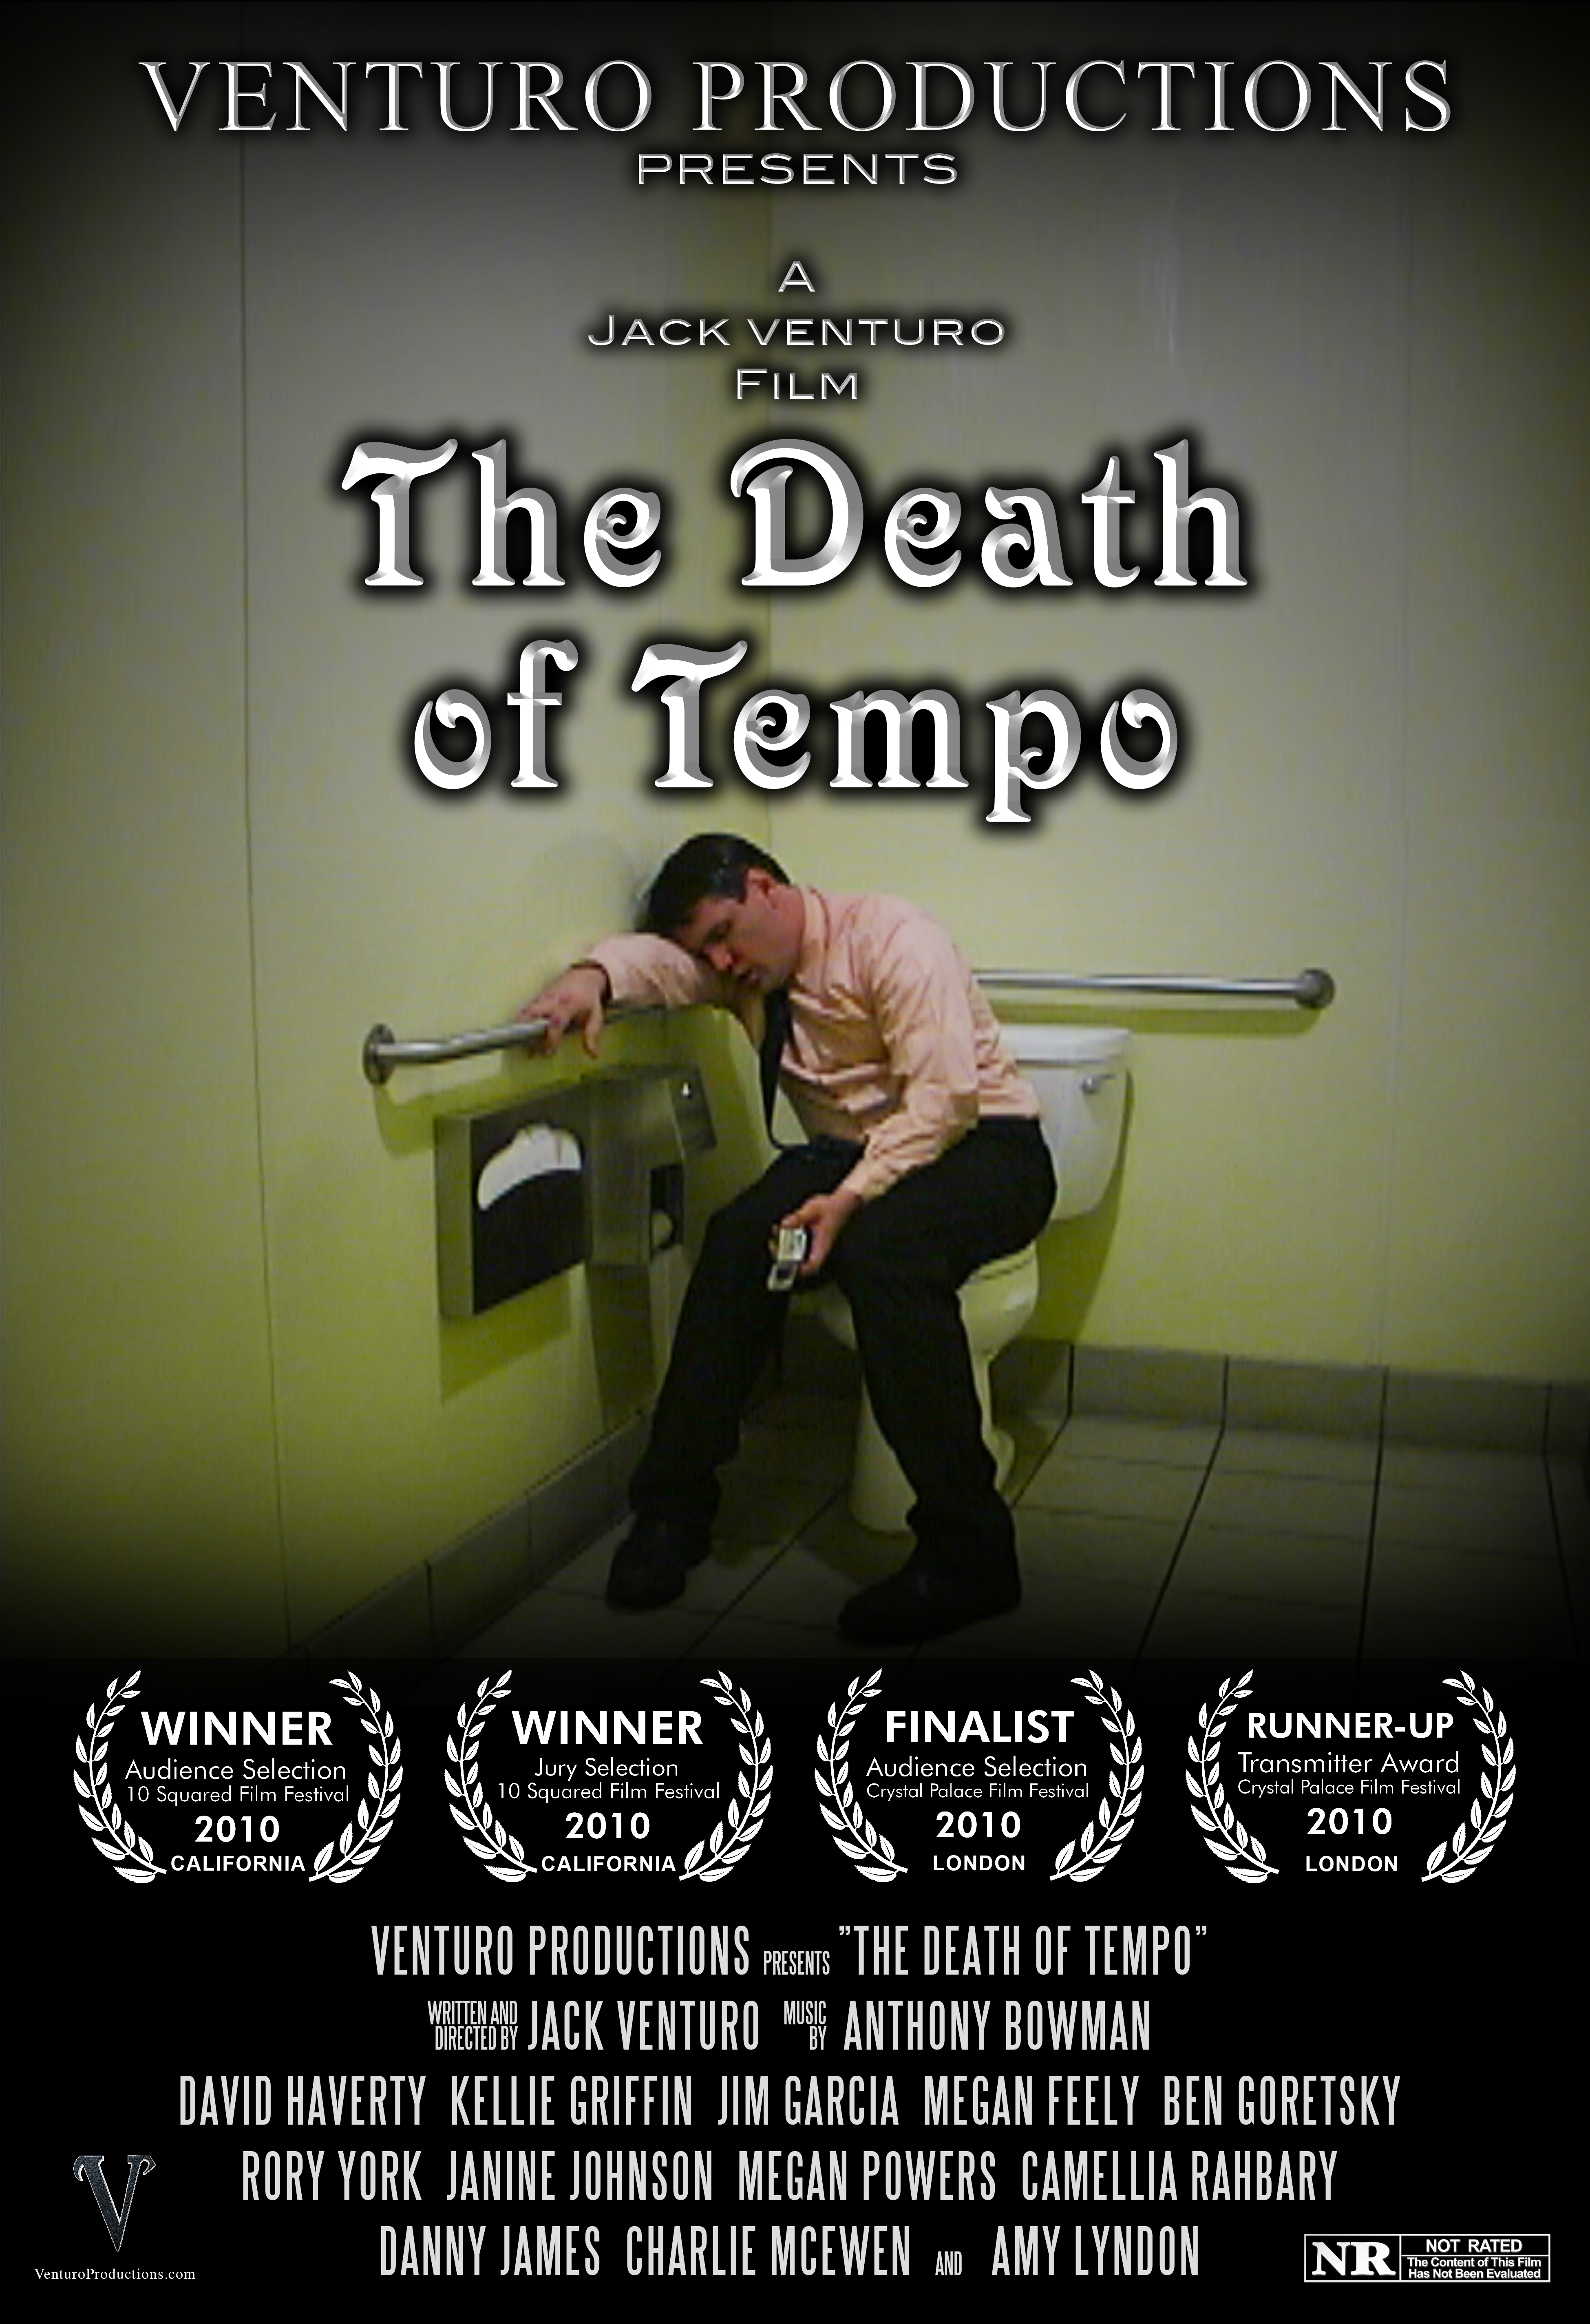 David Haverty in The Death of Tempo (2010)